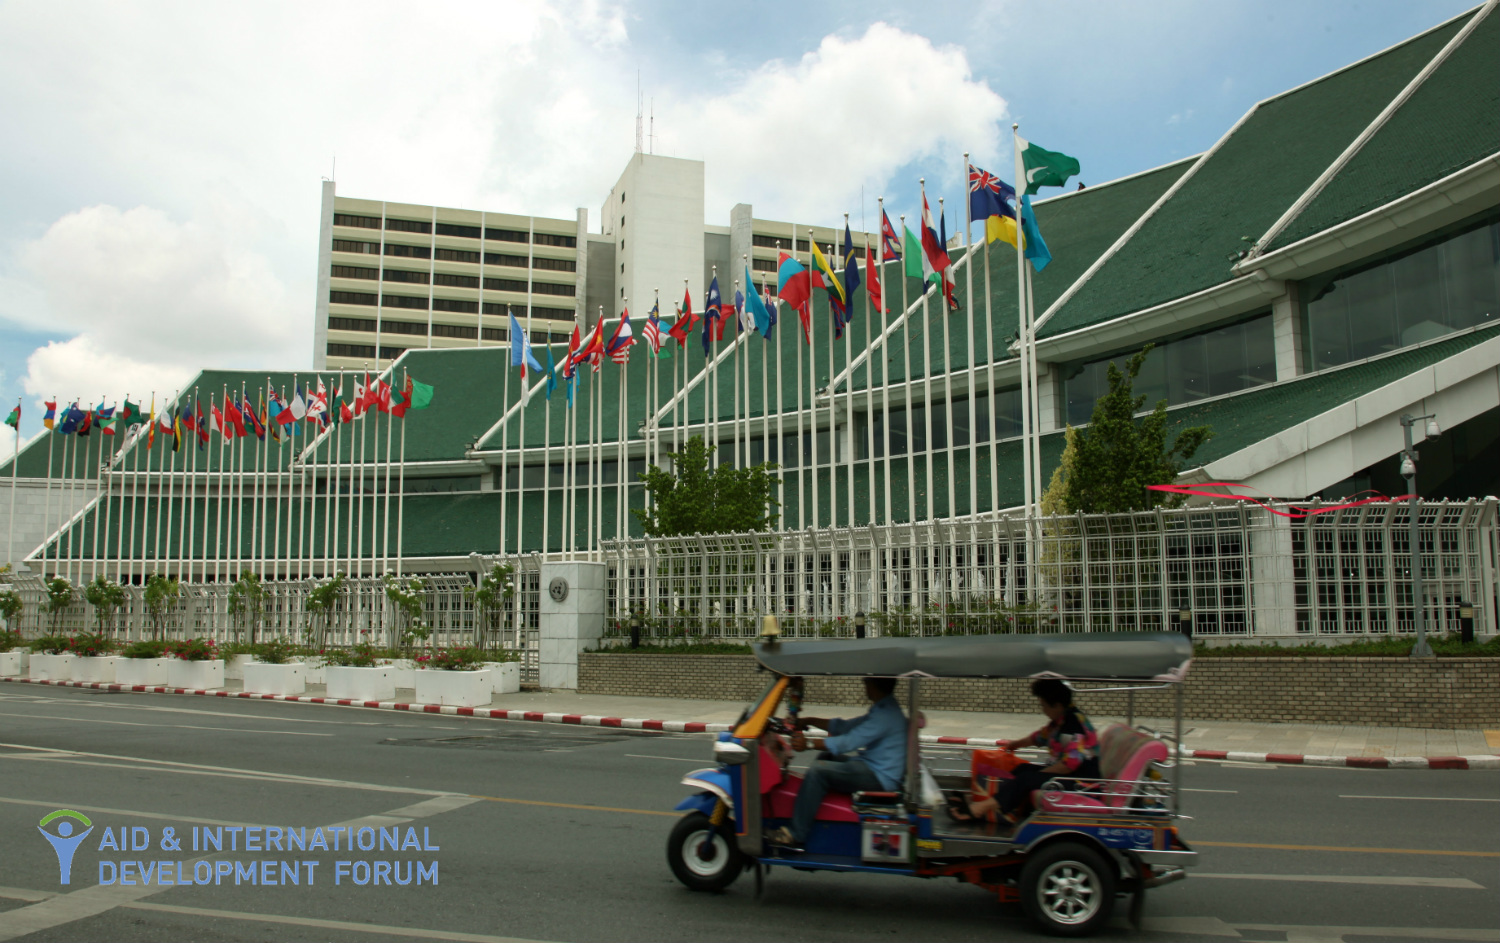 AIDF Summit at the UNCC Bangkok Discussed the Importance of Innovation in Humanitarian Aid